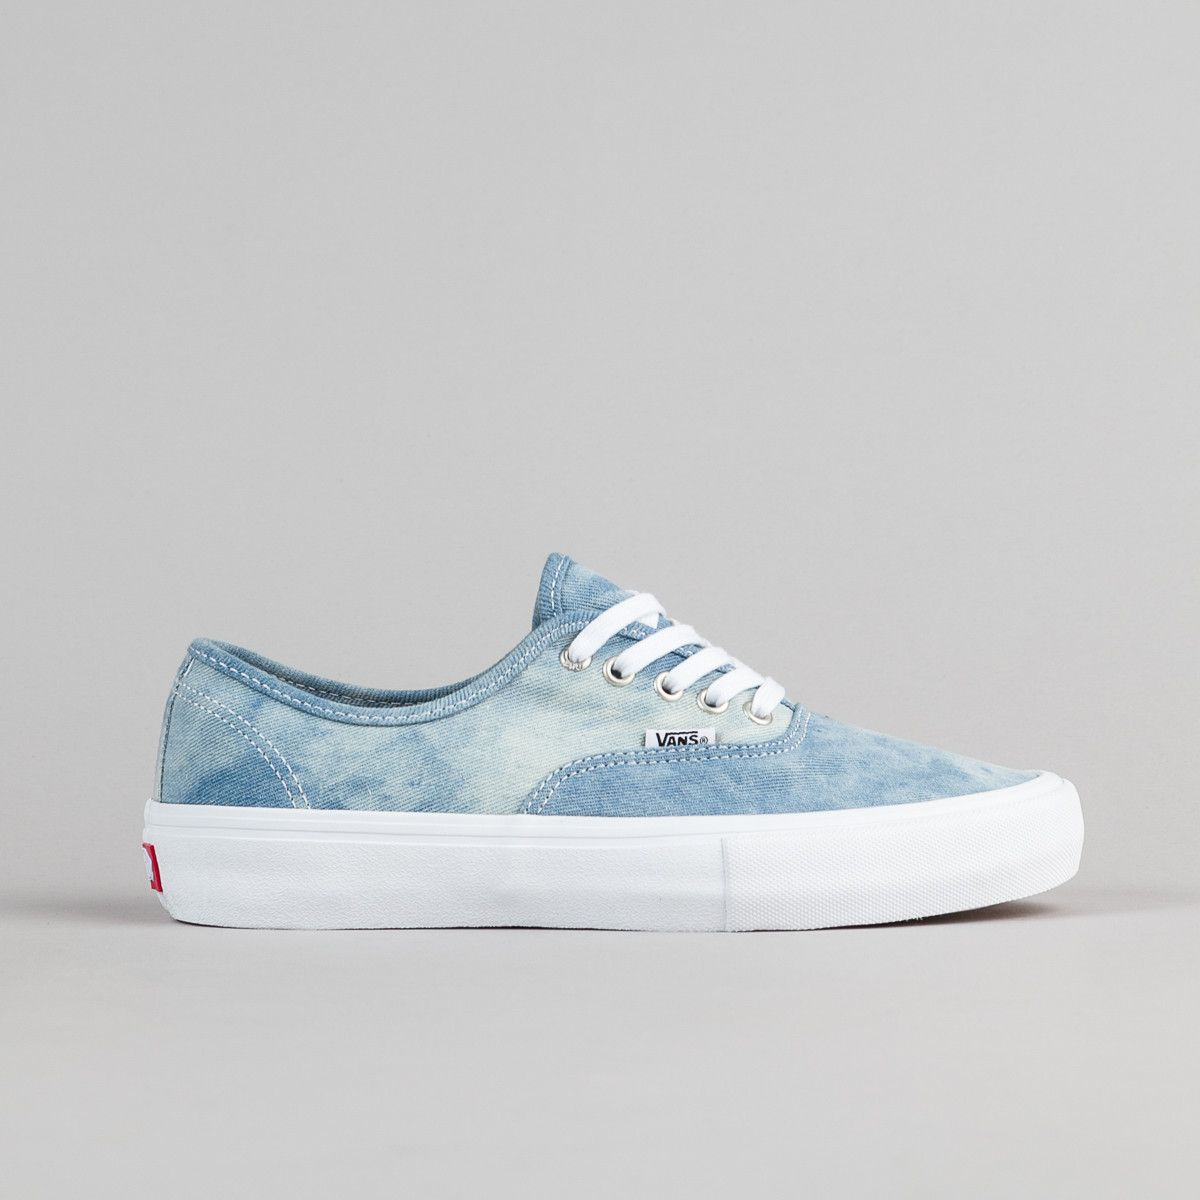 fd75a6f0cf Vans Authentic Pro Shoes - Denim   White